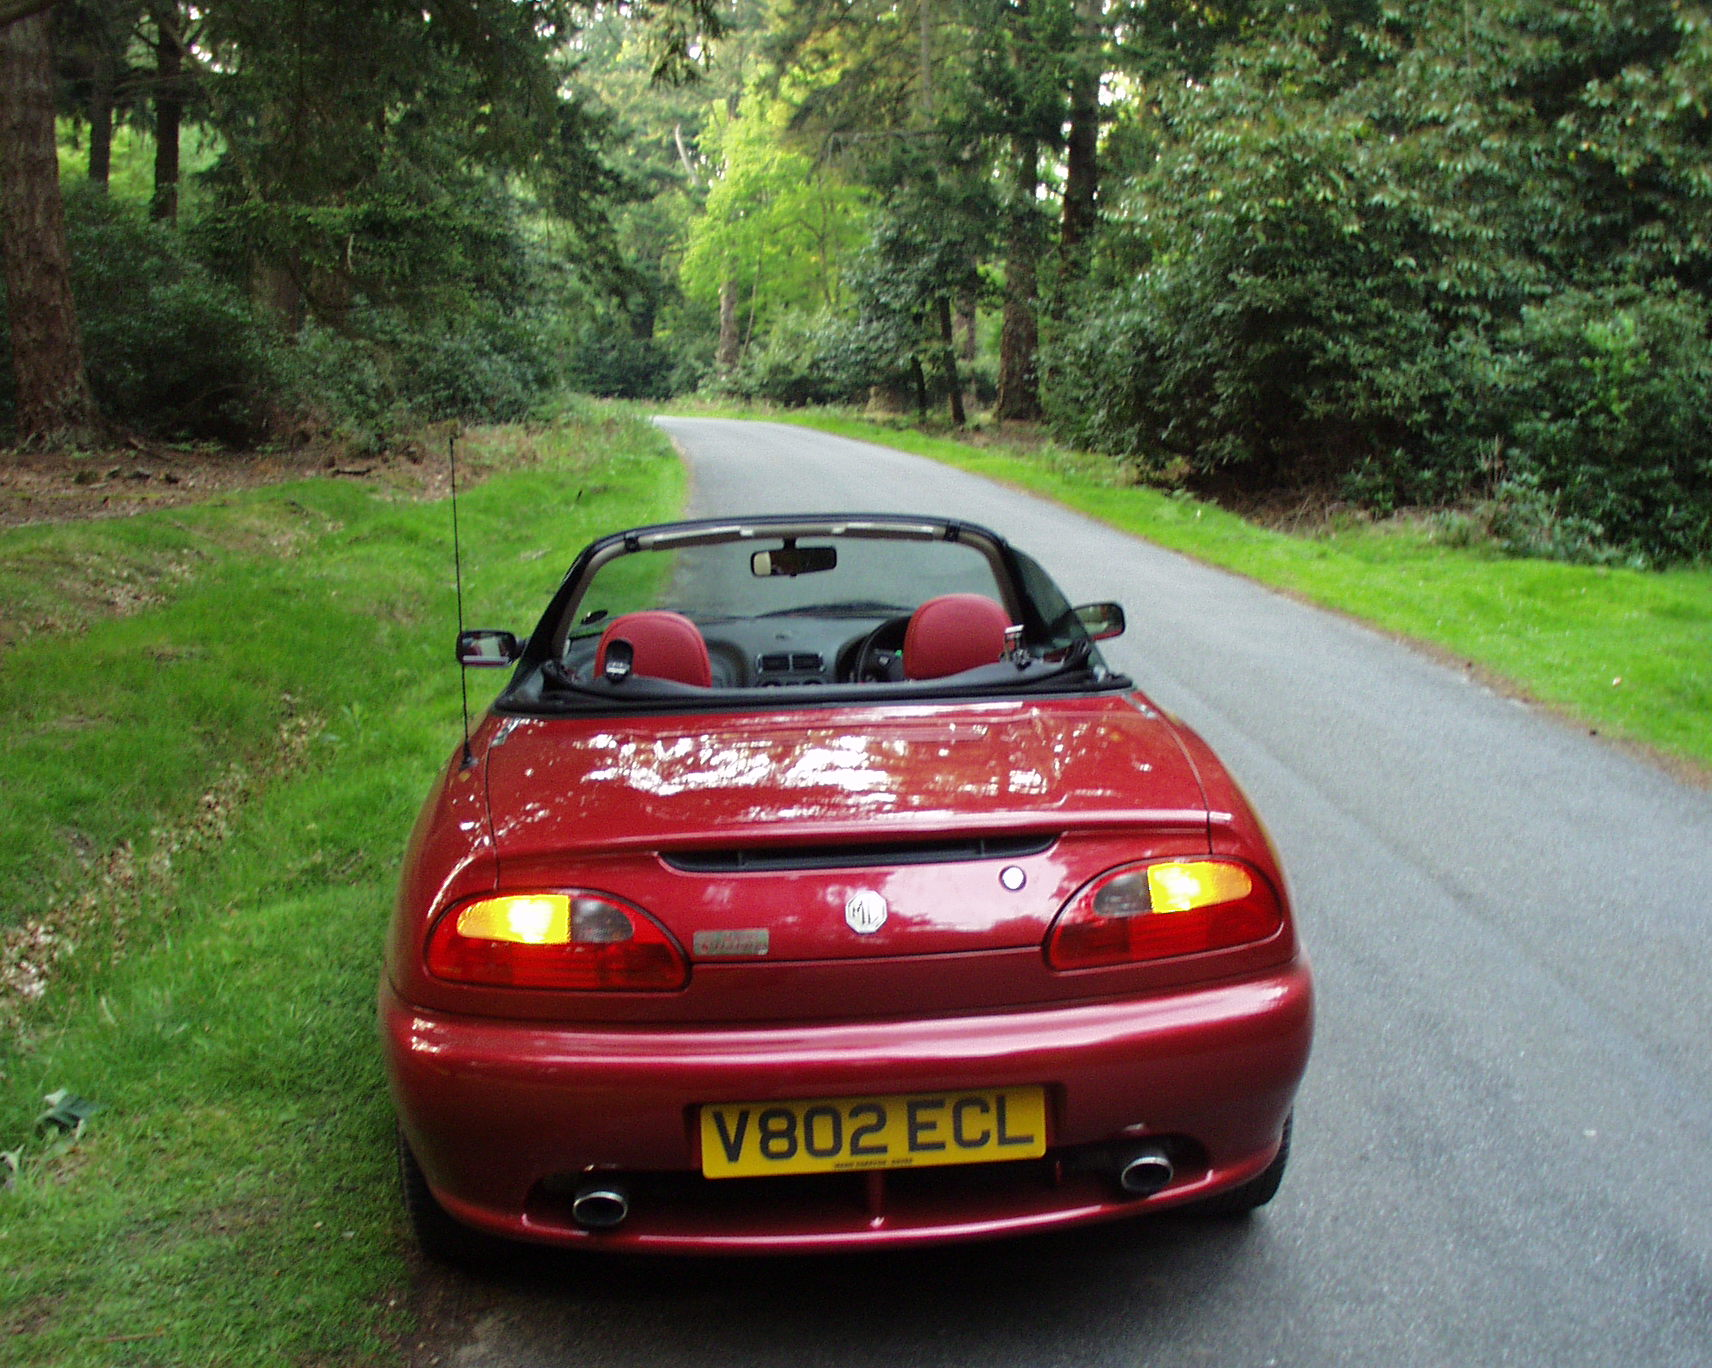 2000-05-04 Around the New Forest in a new MGF